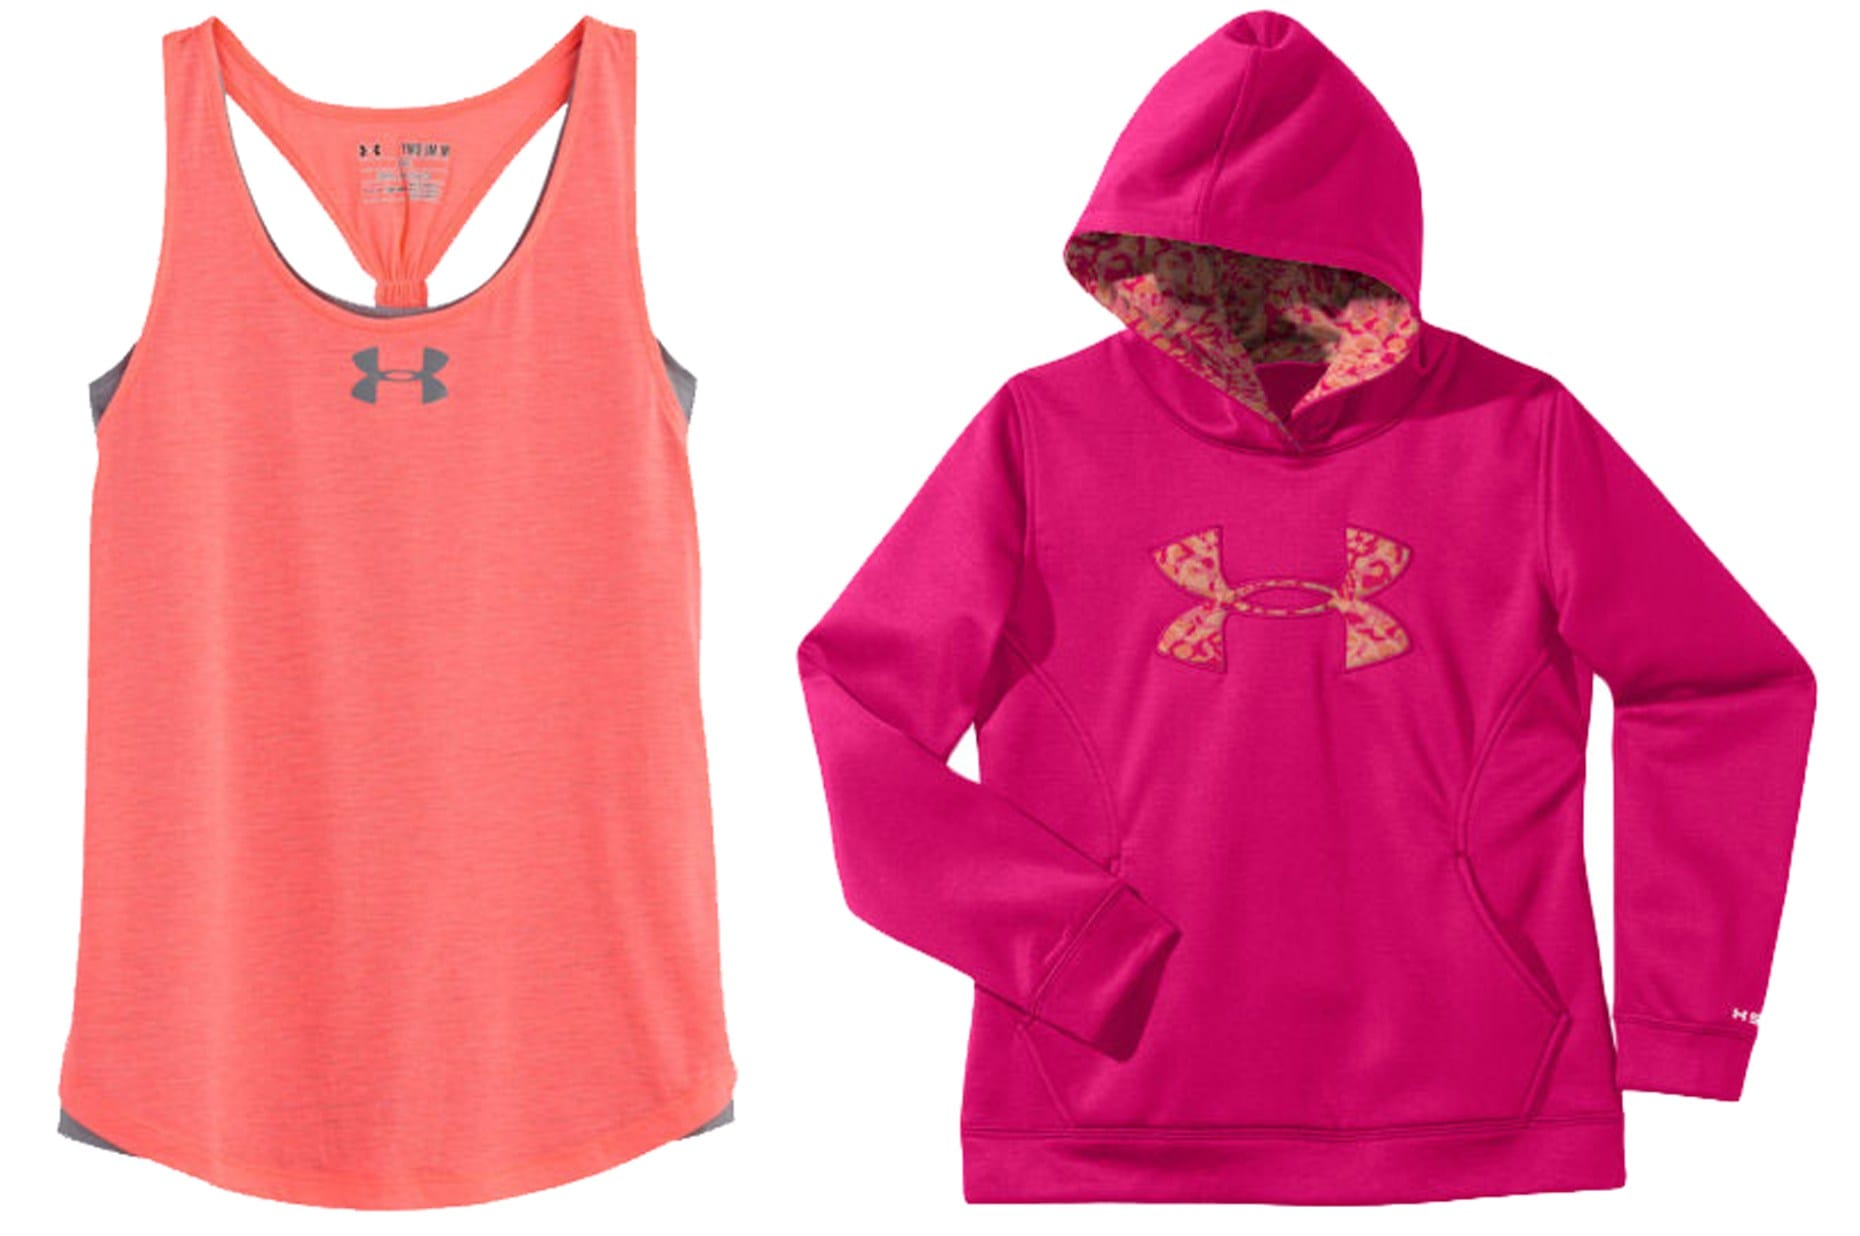 under armour for girls 7-16